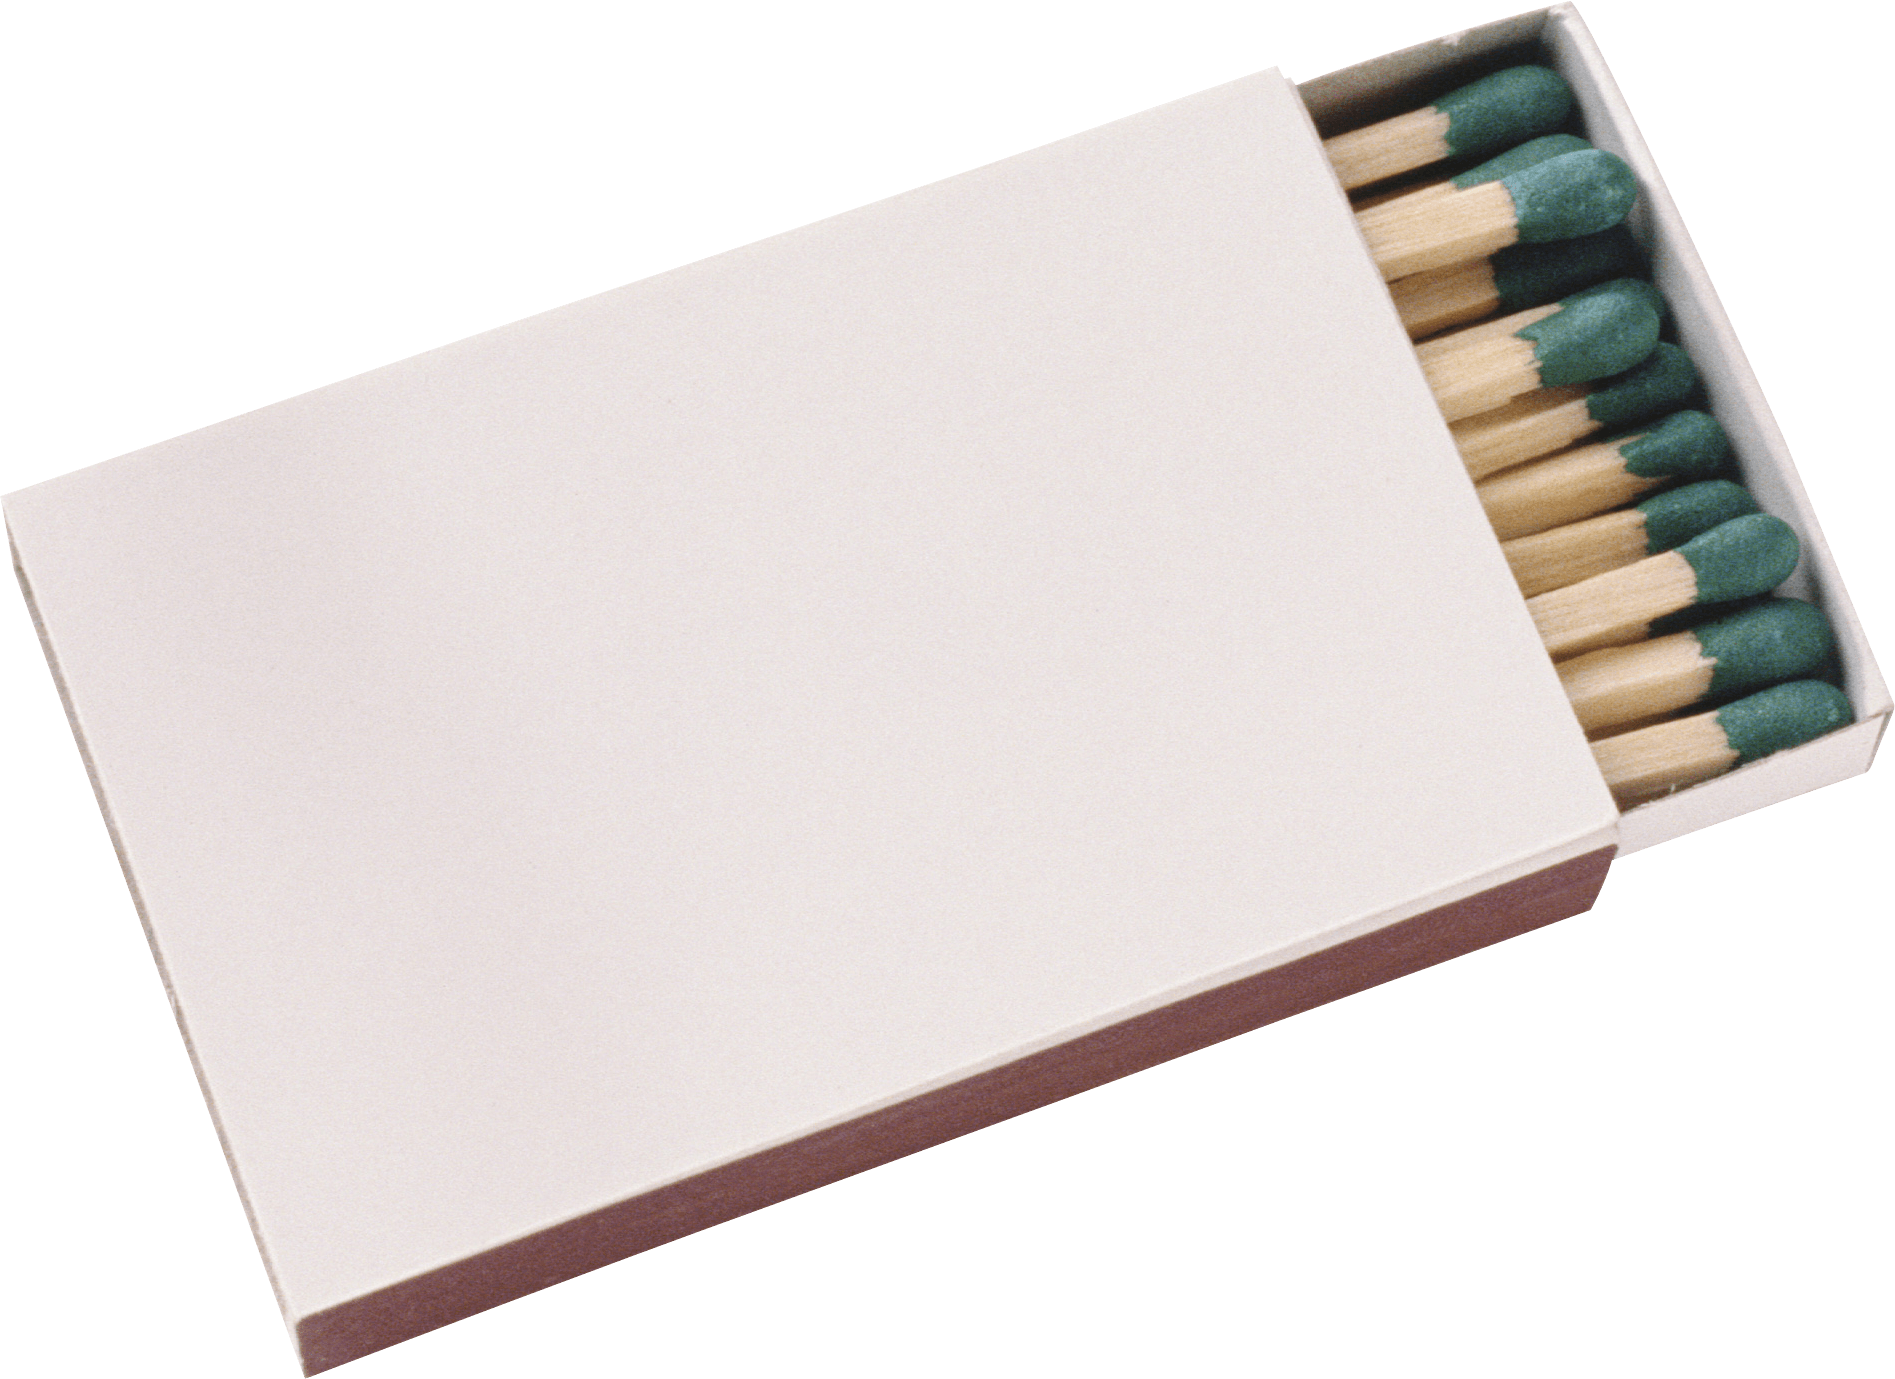 Matches Box Png Image PNG Image